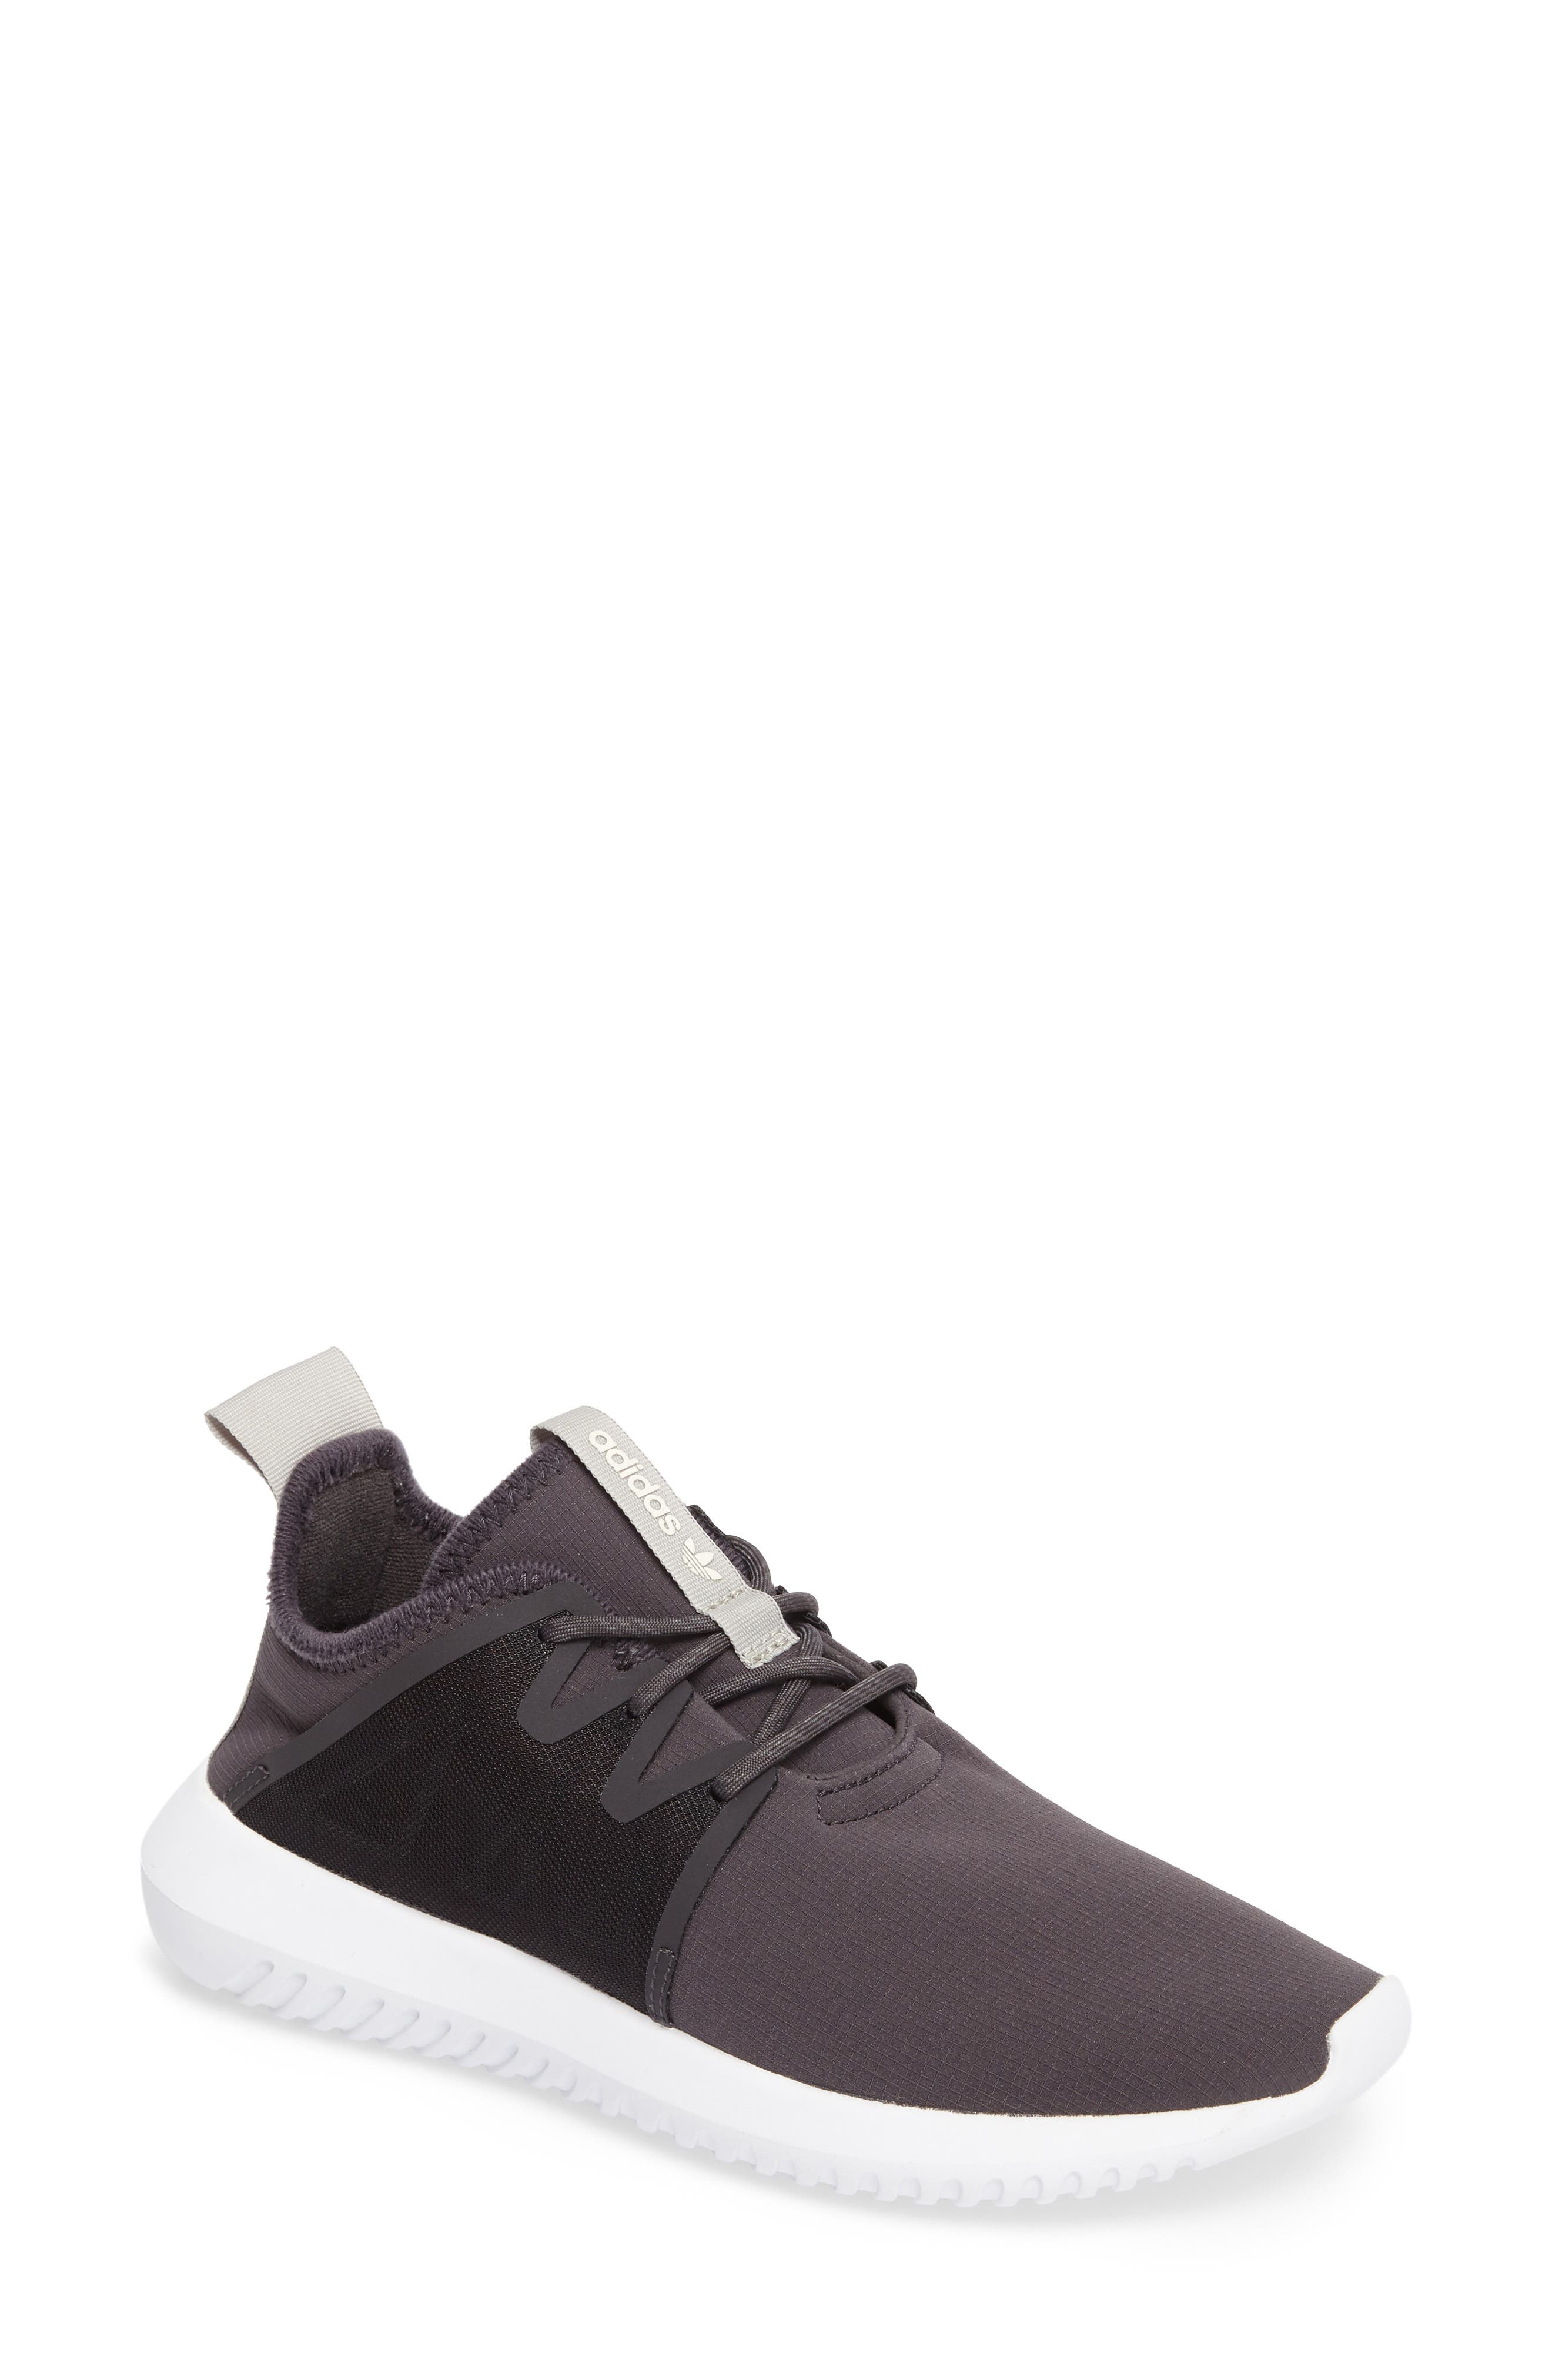 Tubular Viral 2 Sneaker,                             Main thumbnail 1, color,                             005